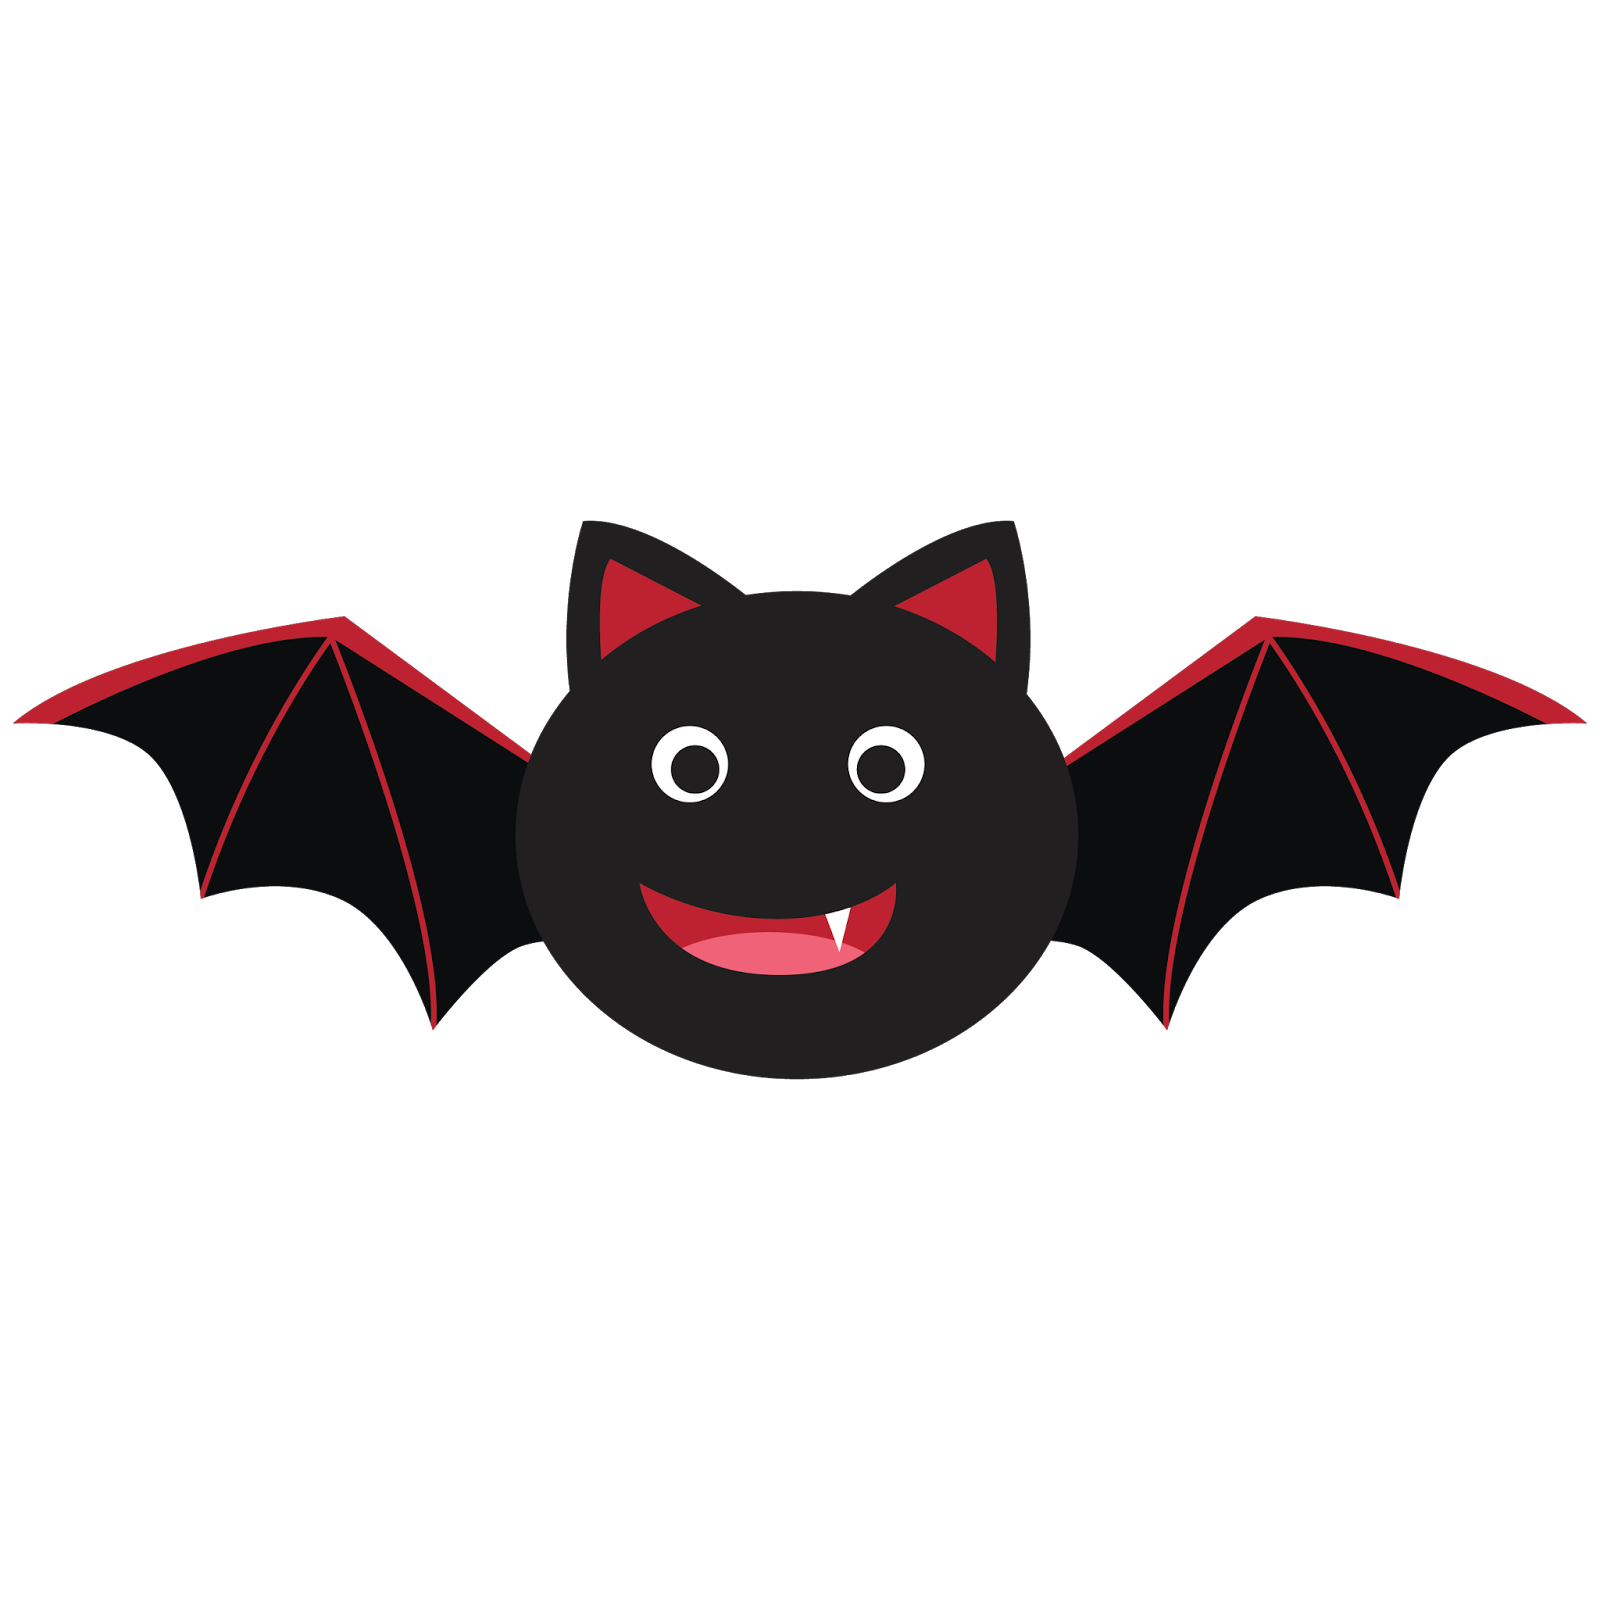 Halloween window clipart clip art Bat Clipart For My 15month Old Alfie I | Love bats! | Pinterest ... clip art